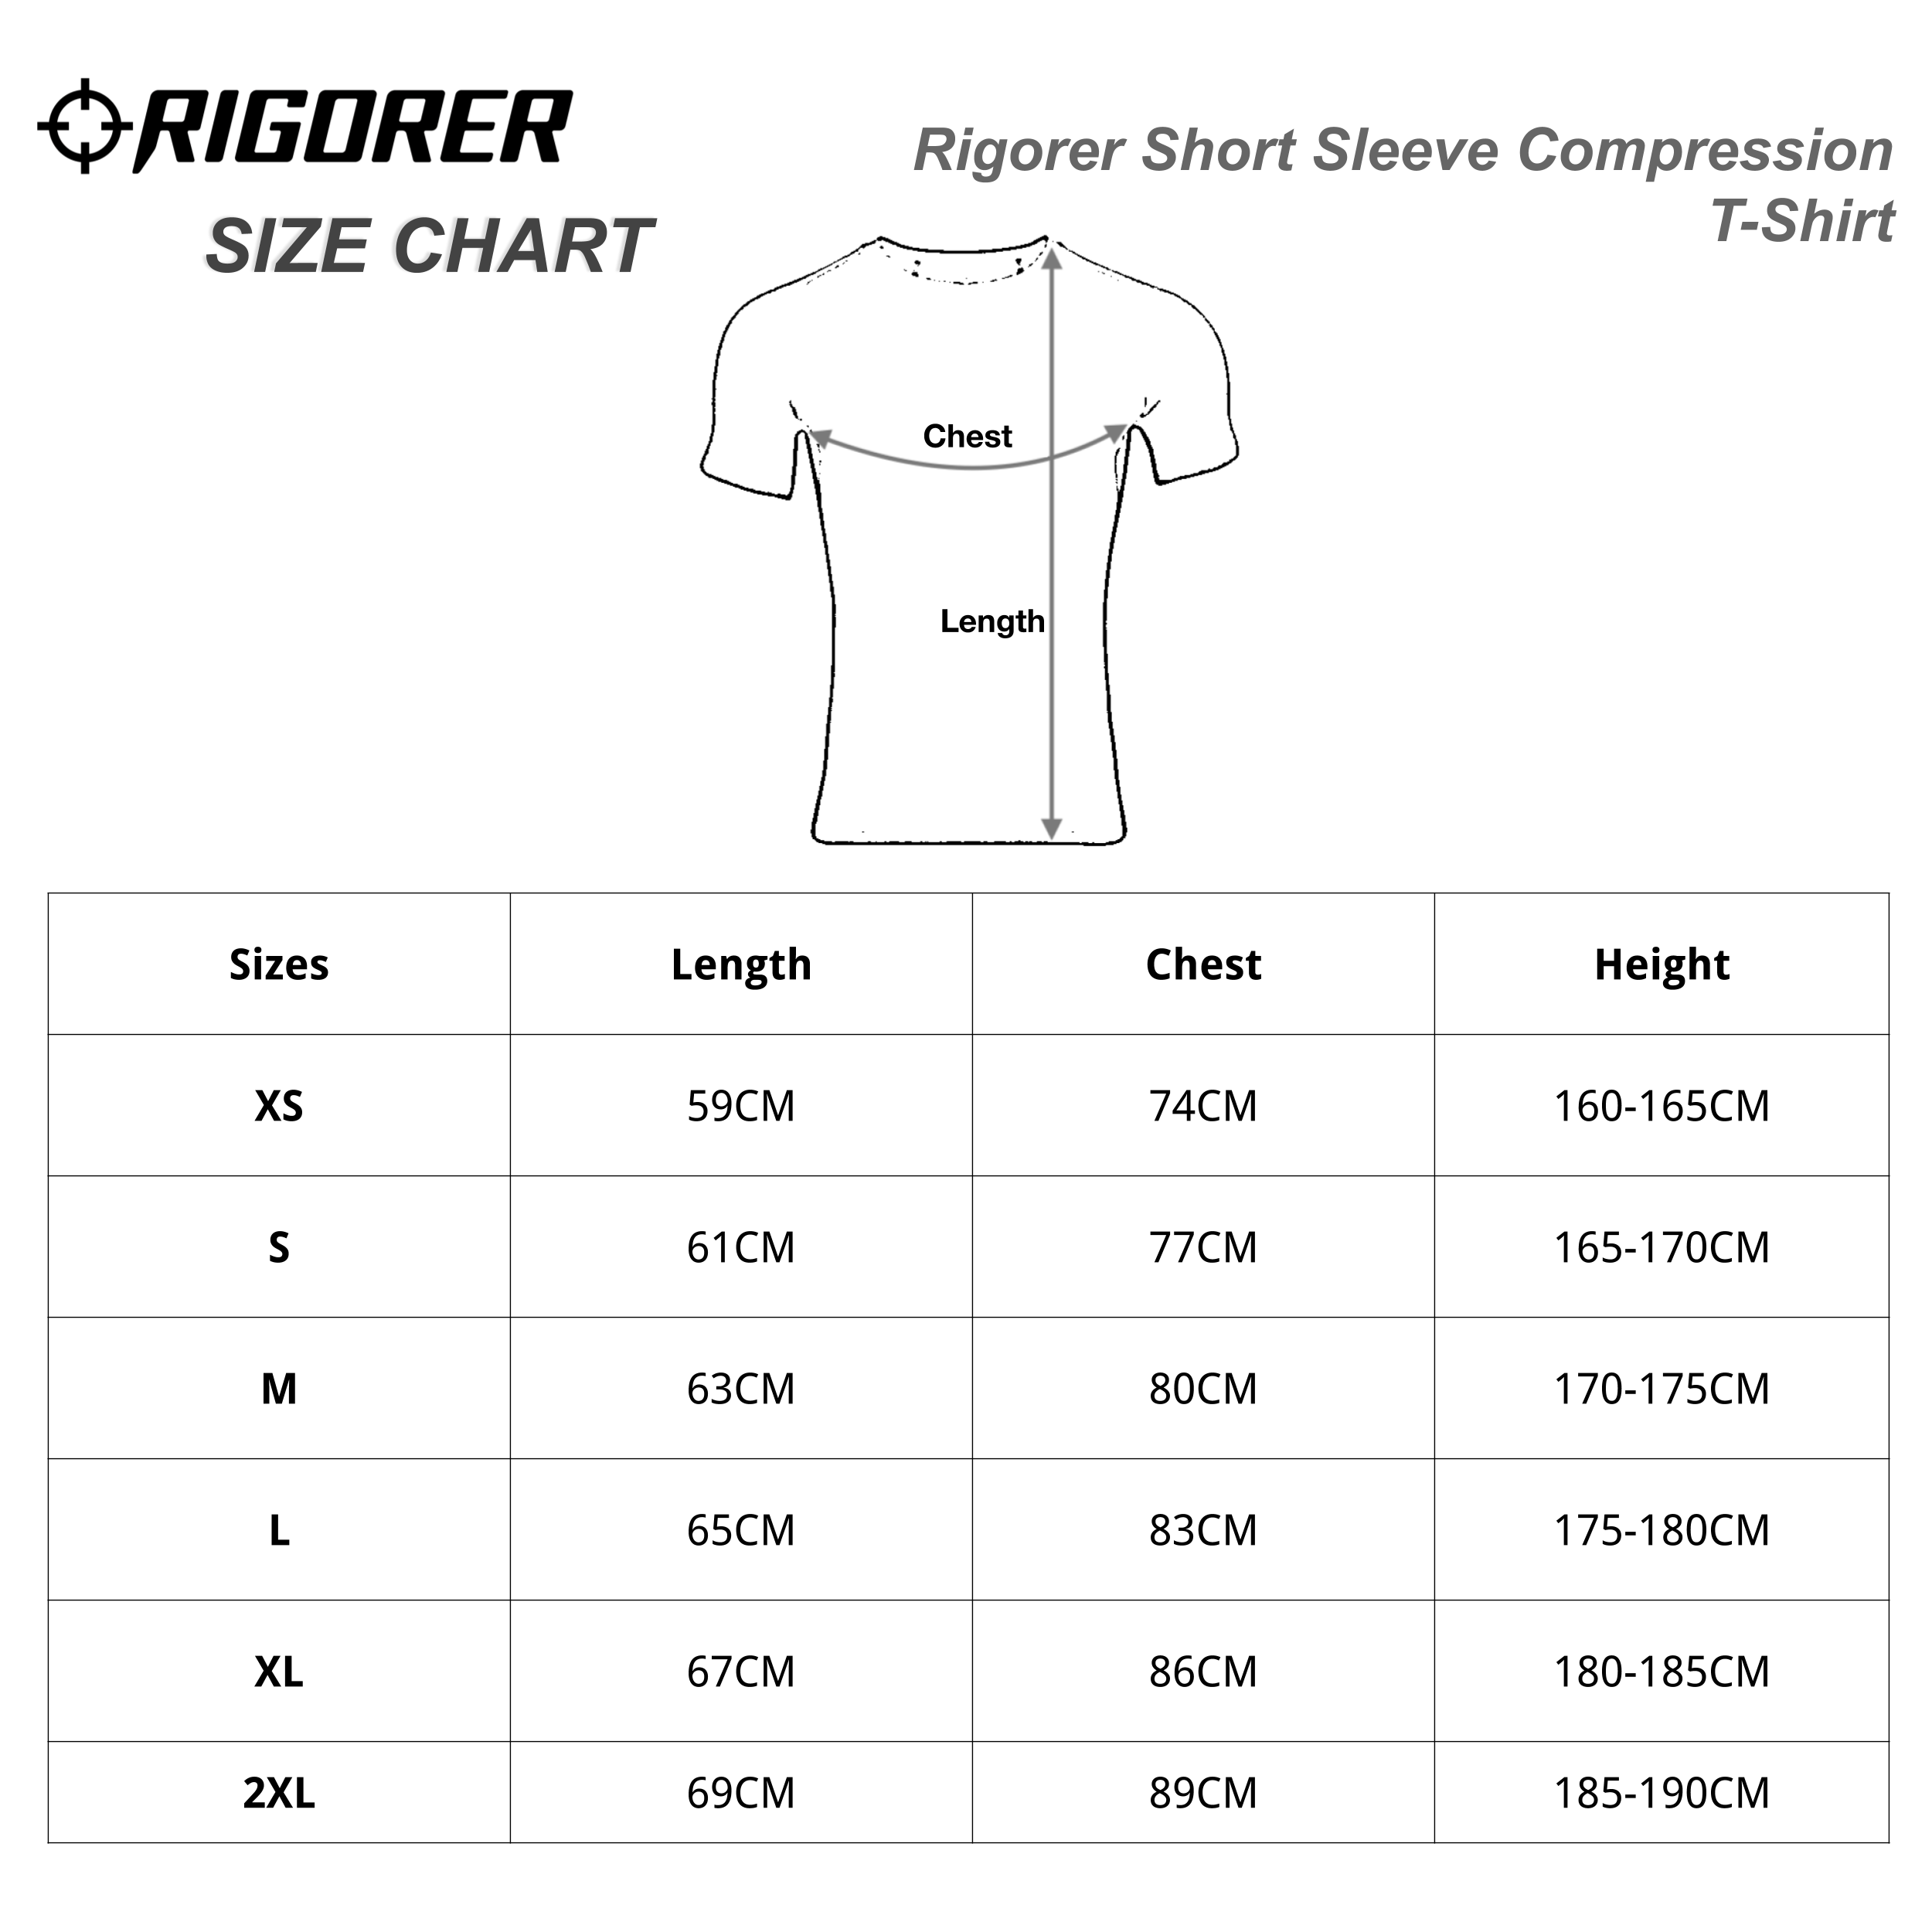 Rigorer Short Sleeve Compression T-Shirt Sizing Chart